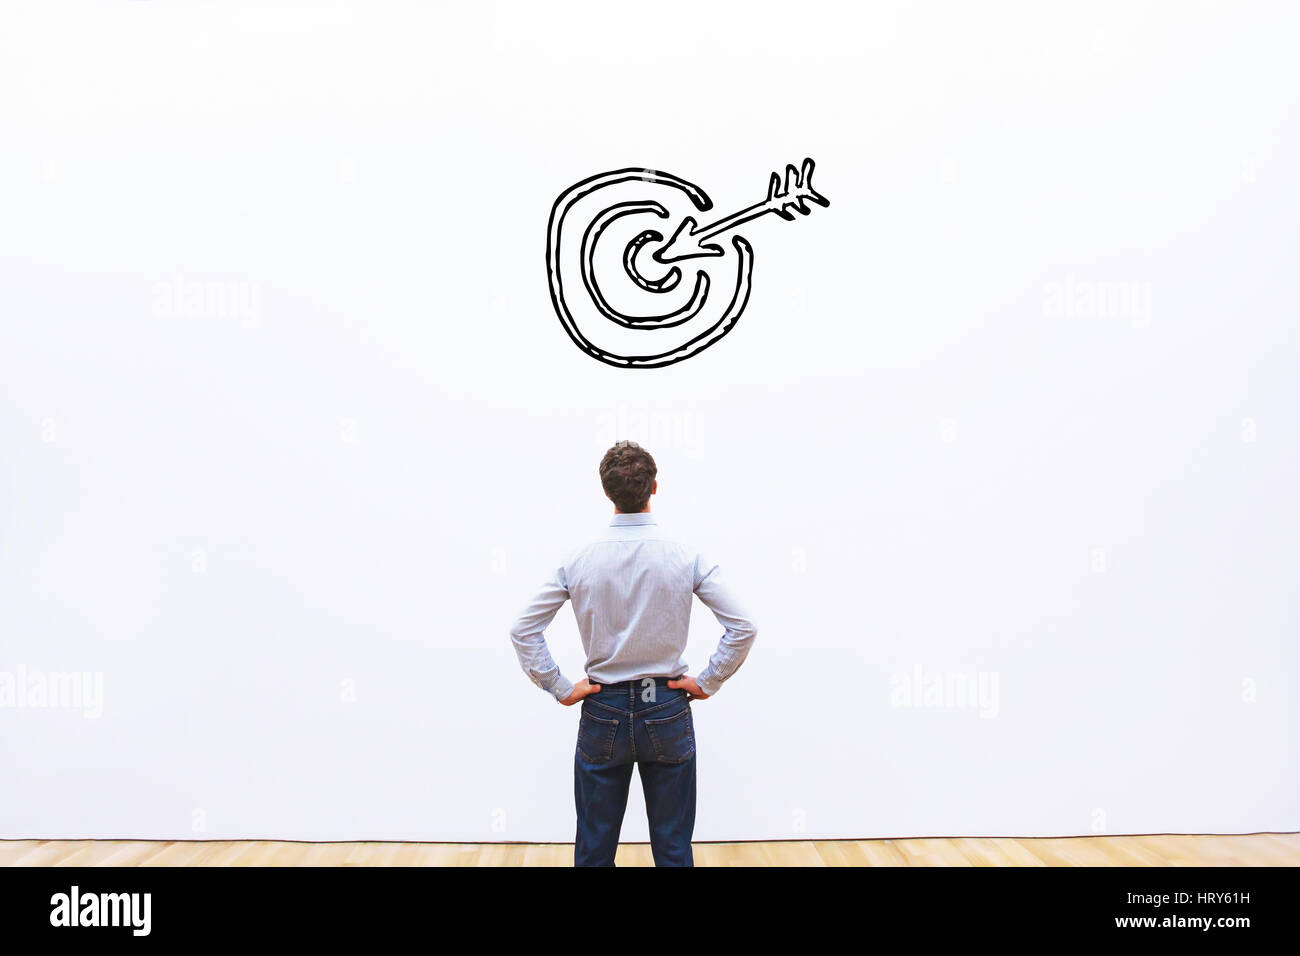 business target or goal concept, aim - Stock Image